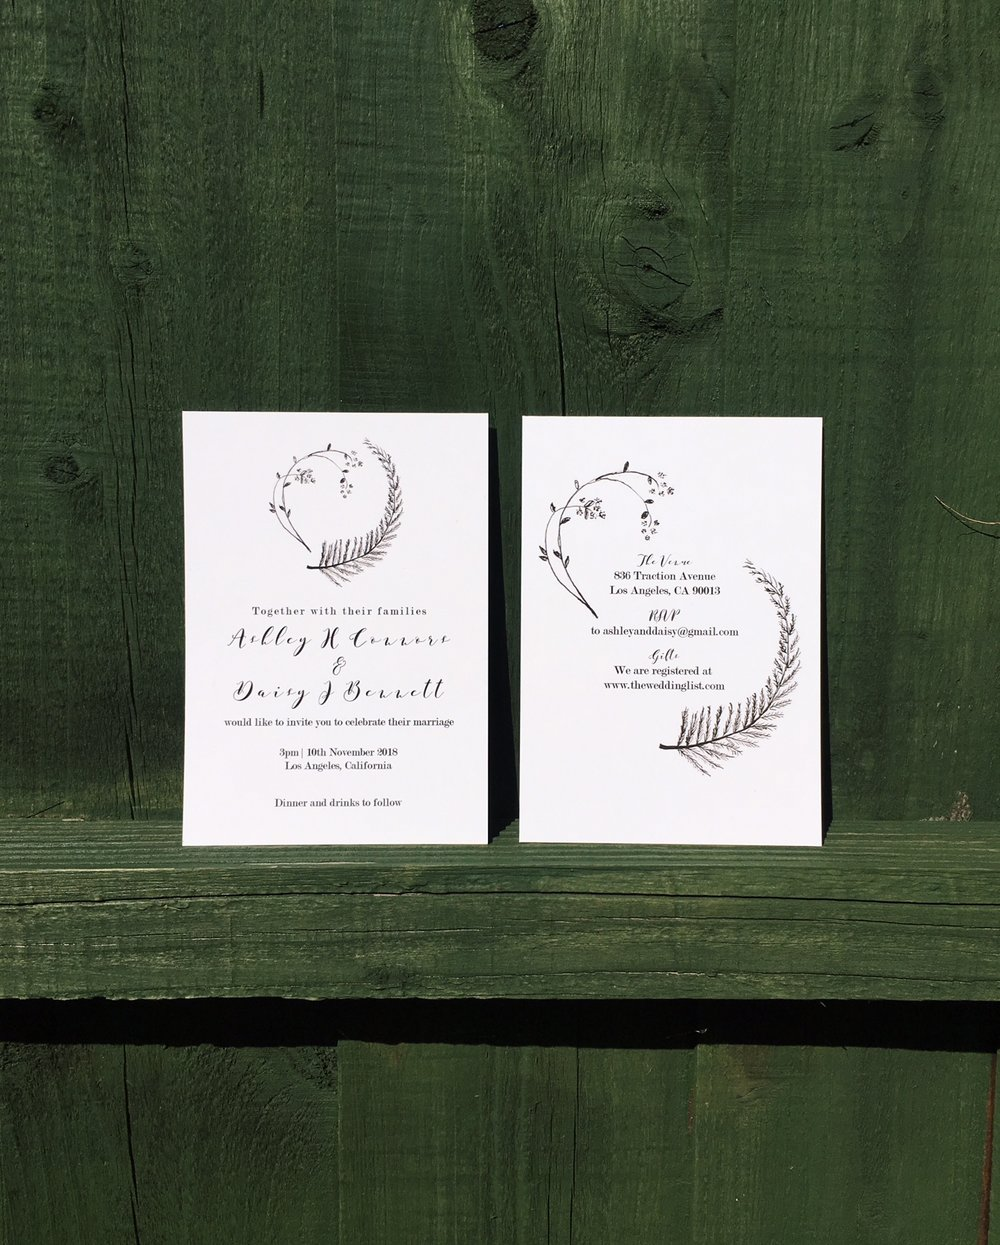 hannahisabellewisweddingstationery